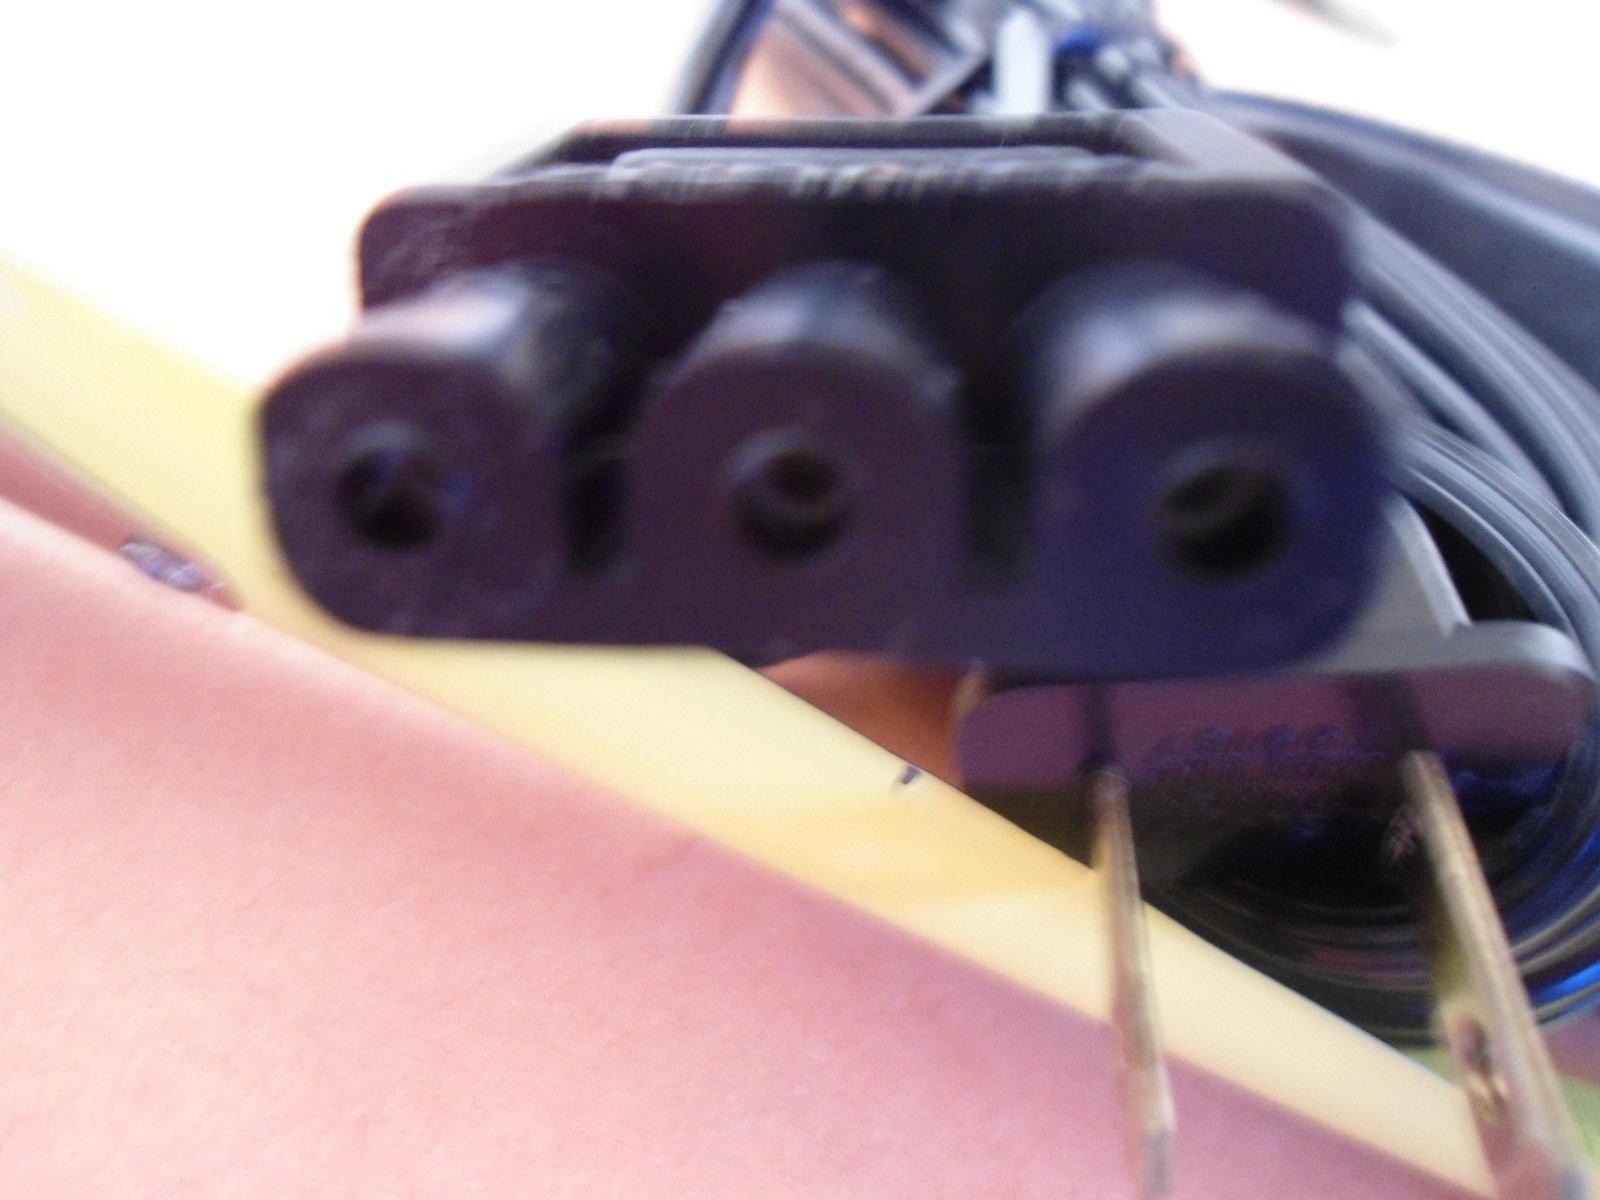 NGOSEW Foot Control W//Cord Works with Singer Sewing Machine Simple 2263 3116 3221 3223 3232 3337